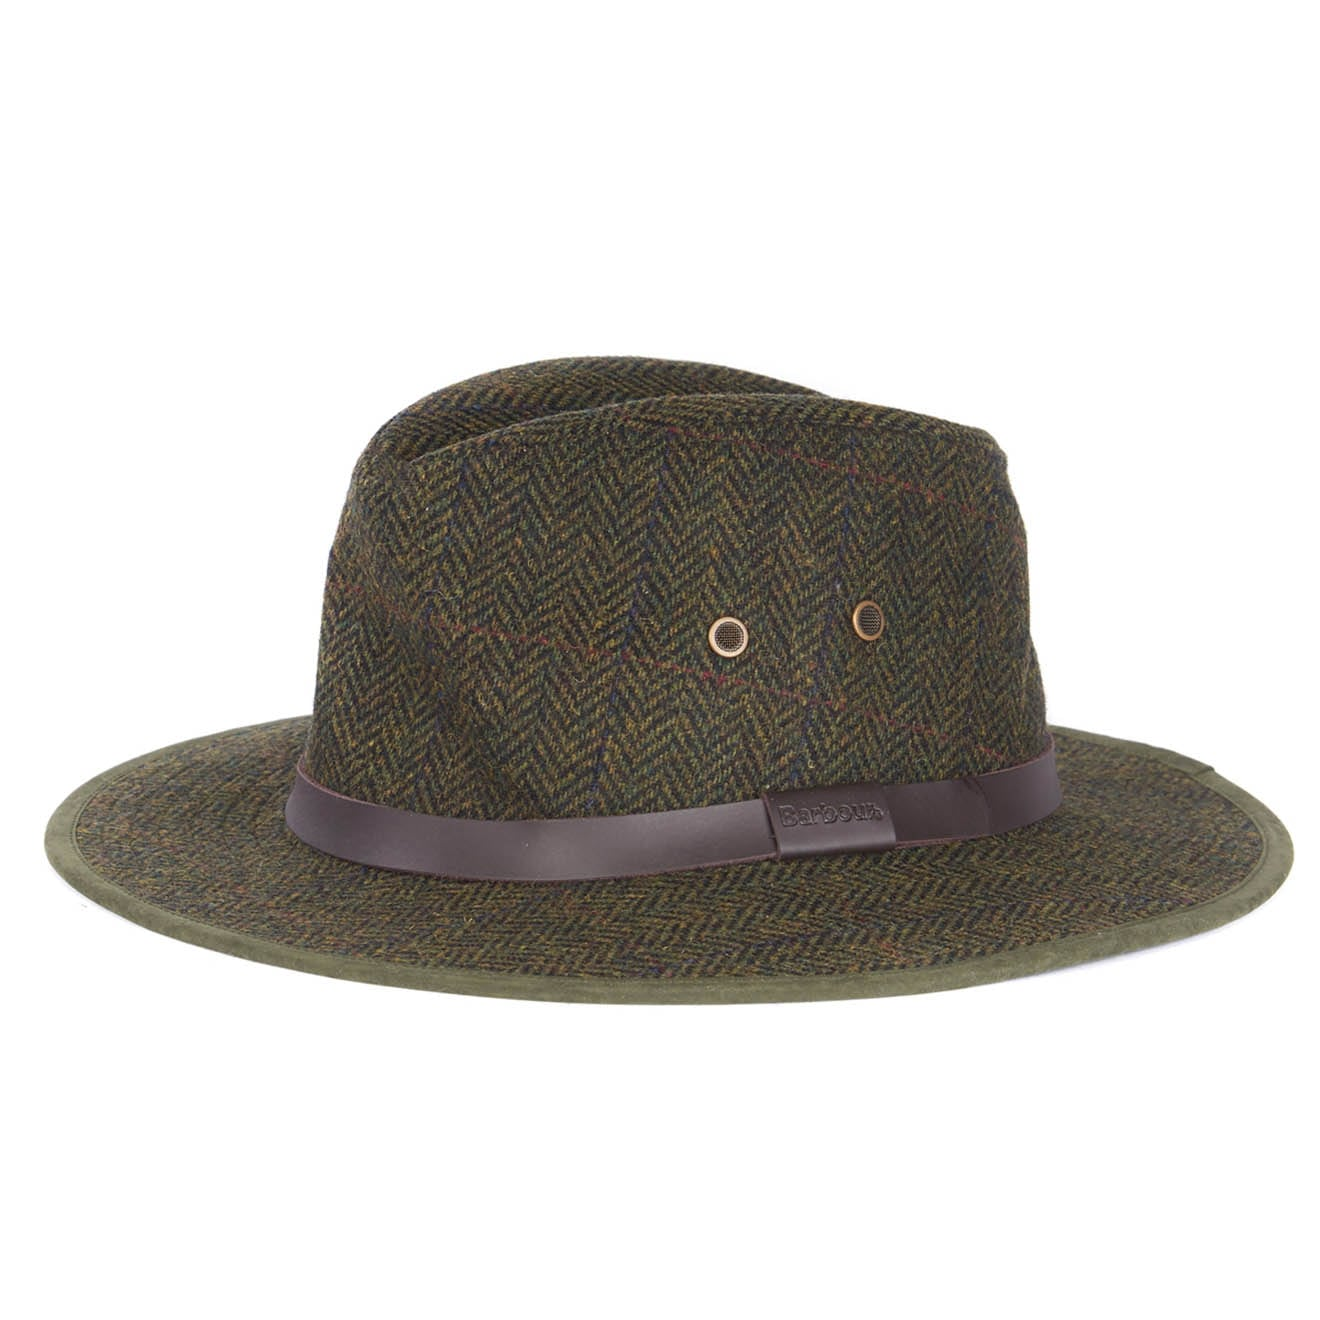 Barbour Bushman Fedora Hat Olive Country Check